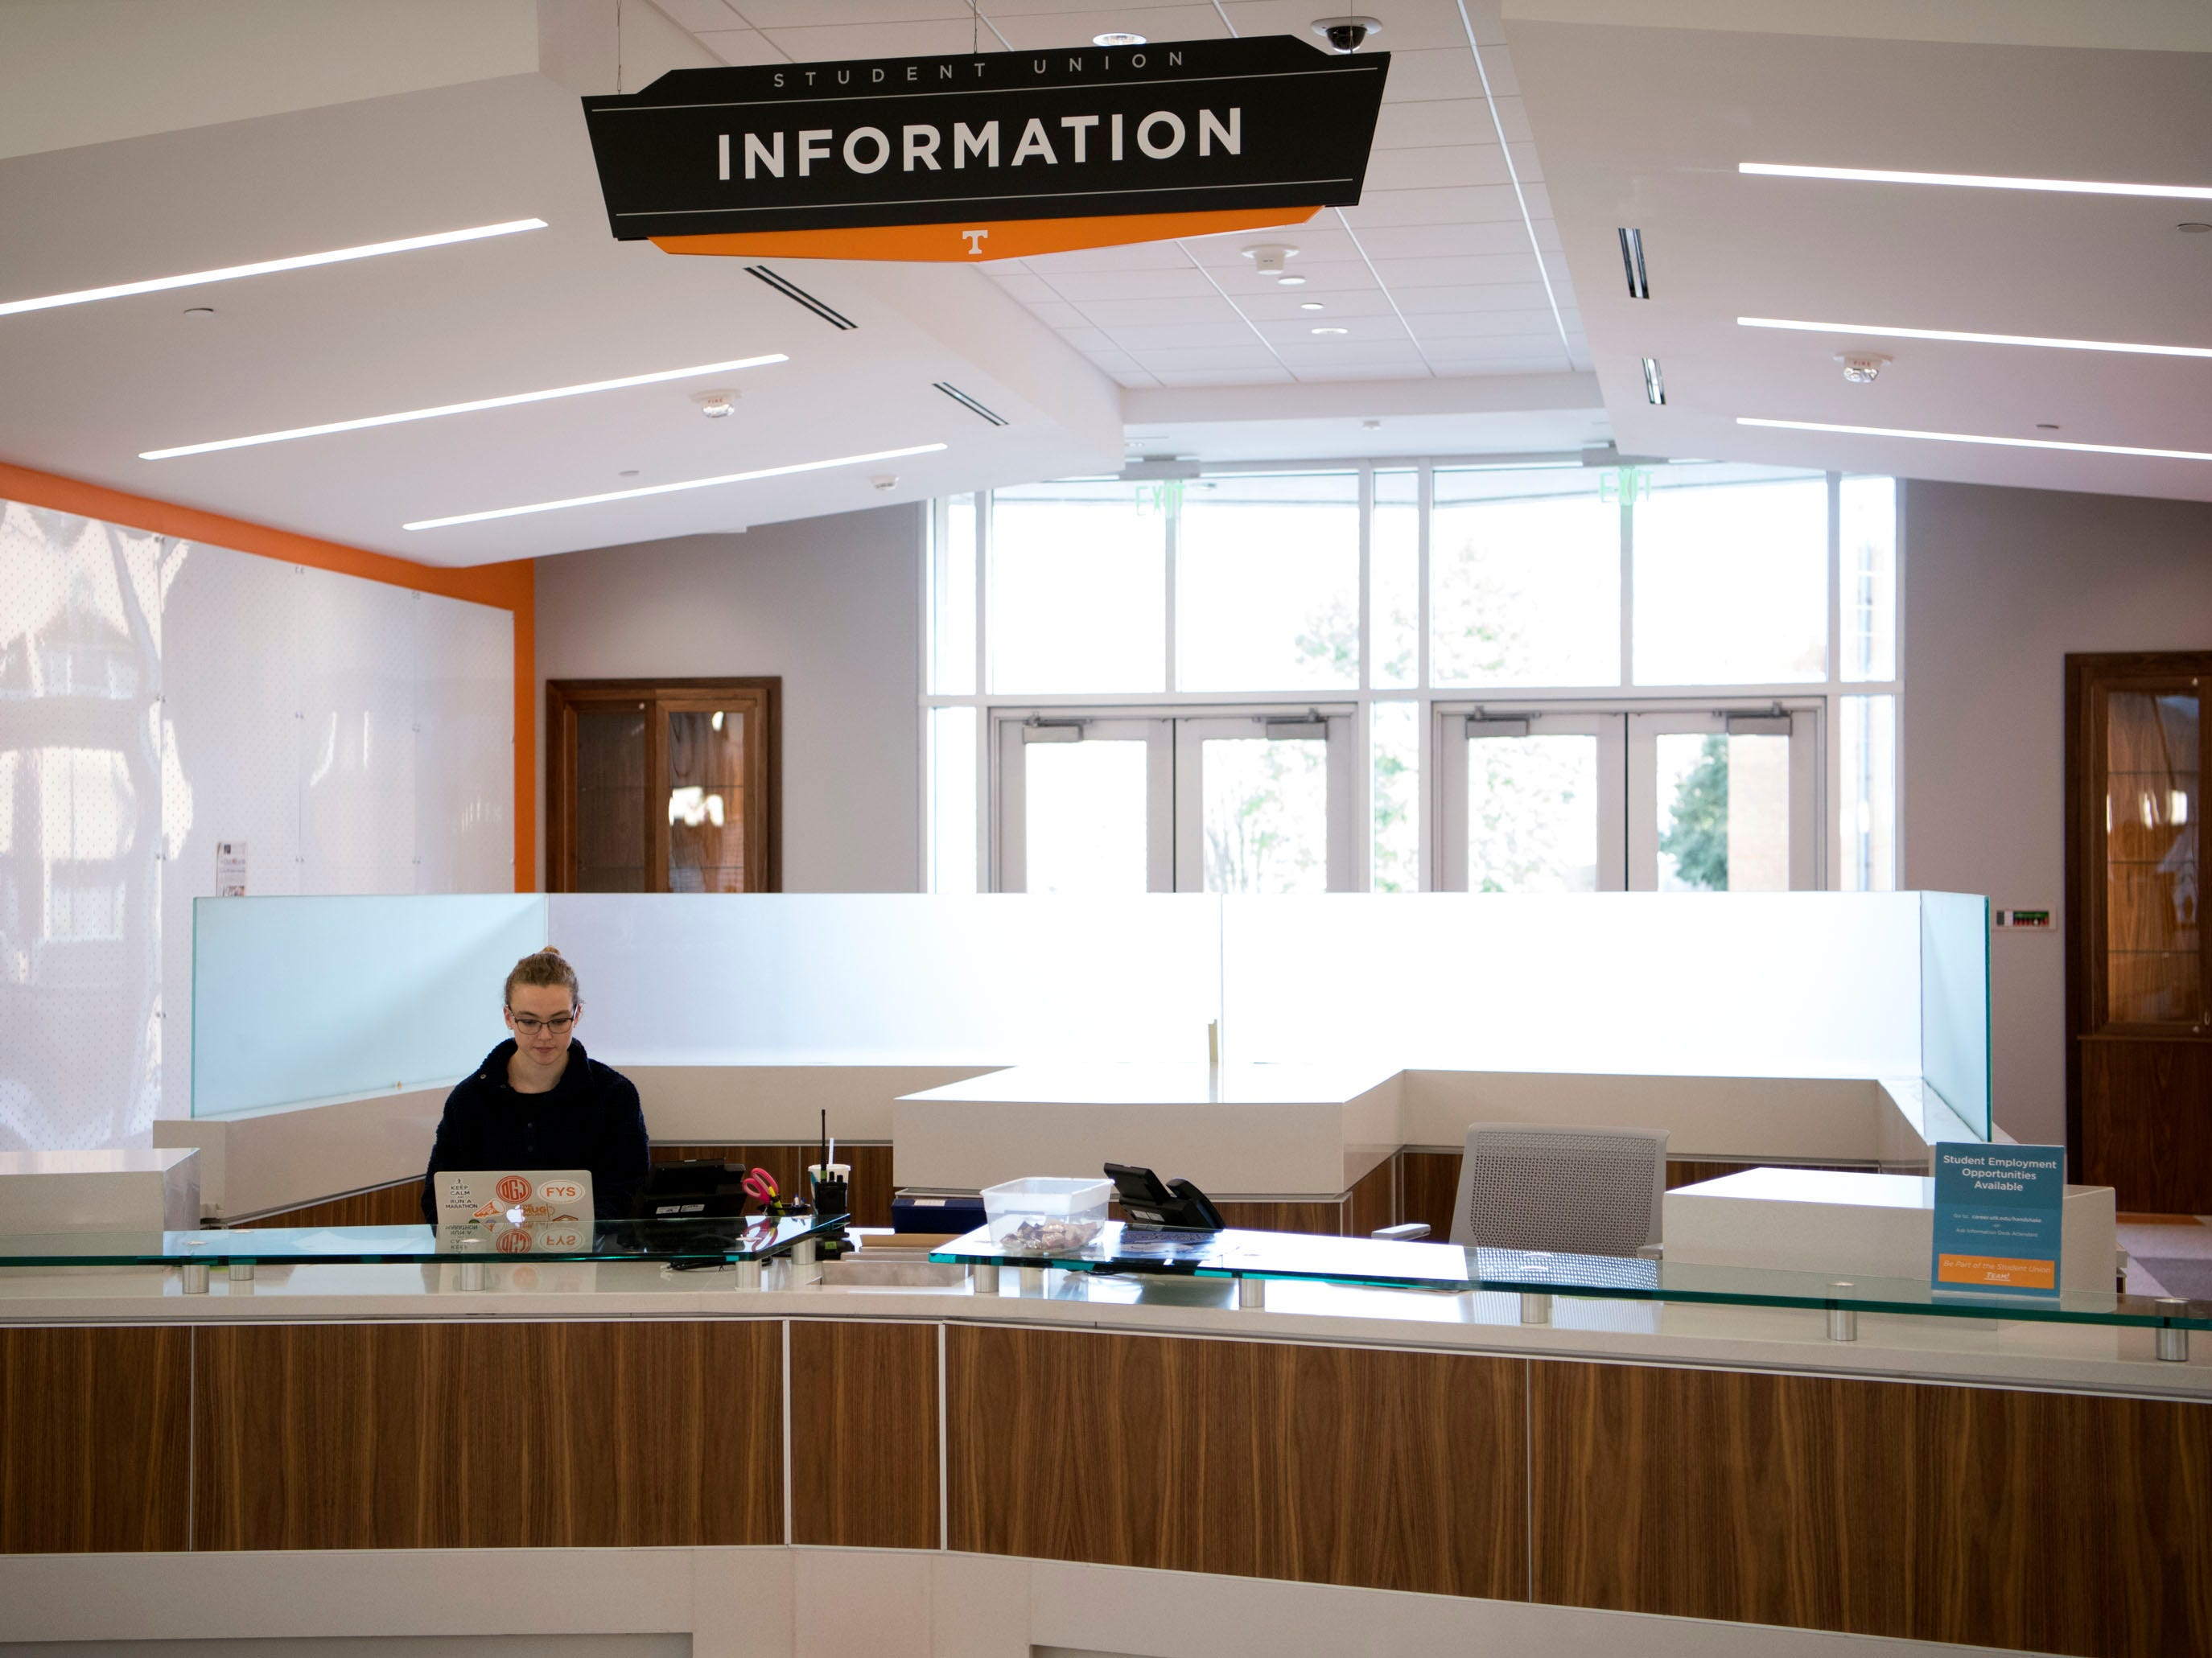 The Student Union information desk.